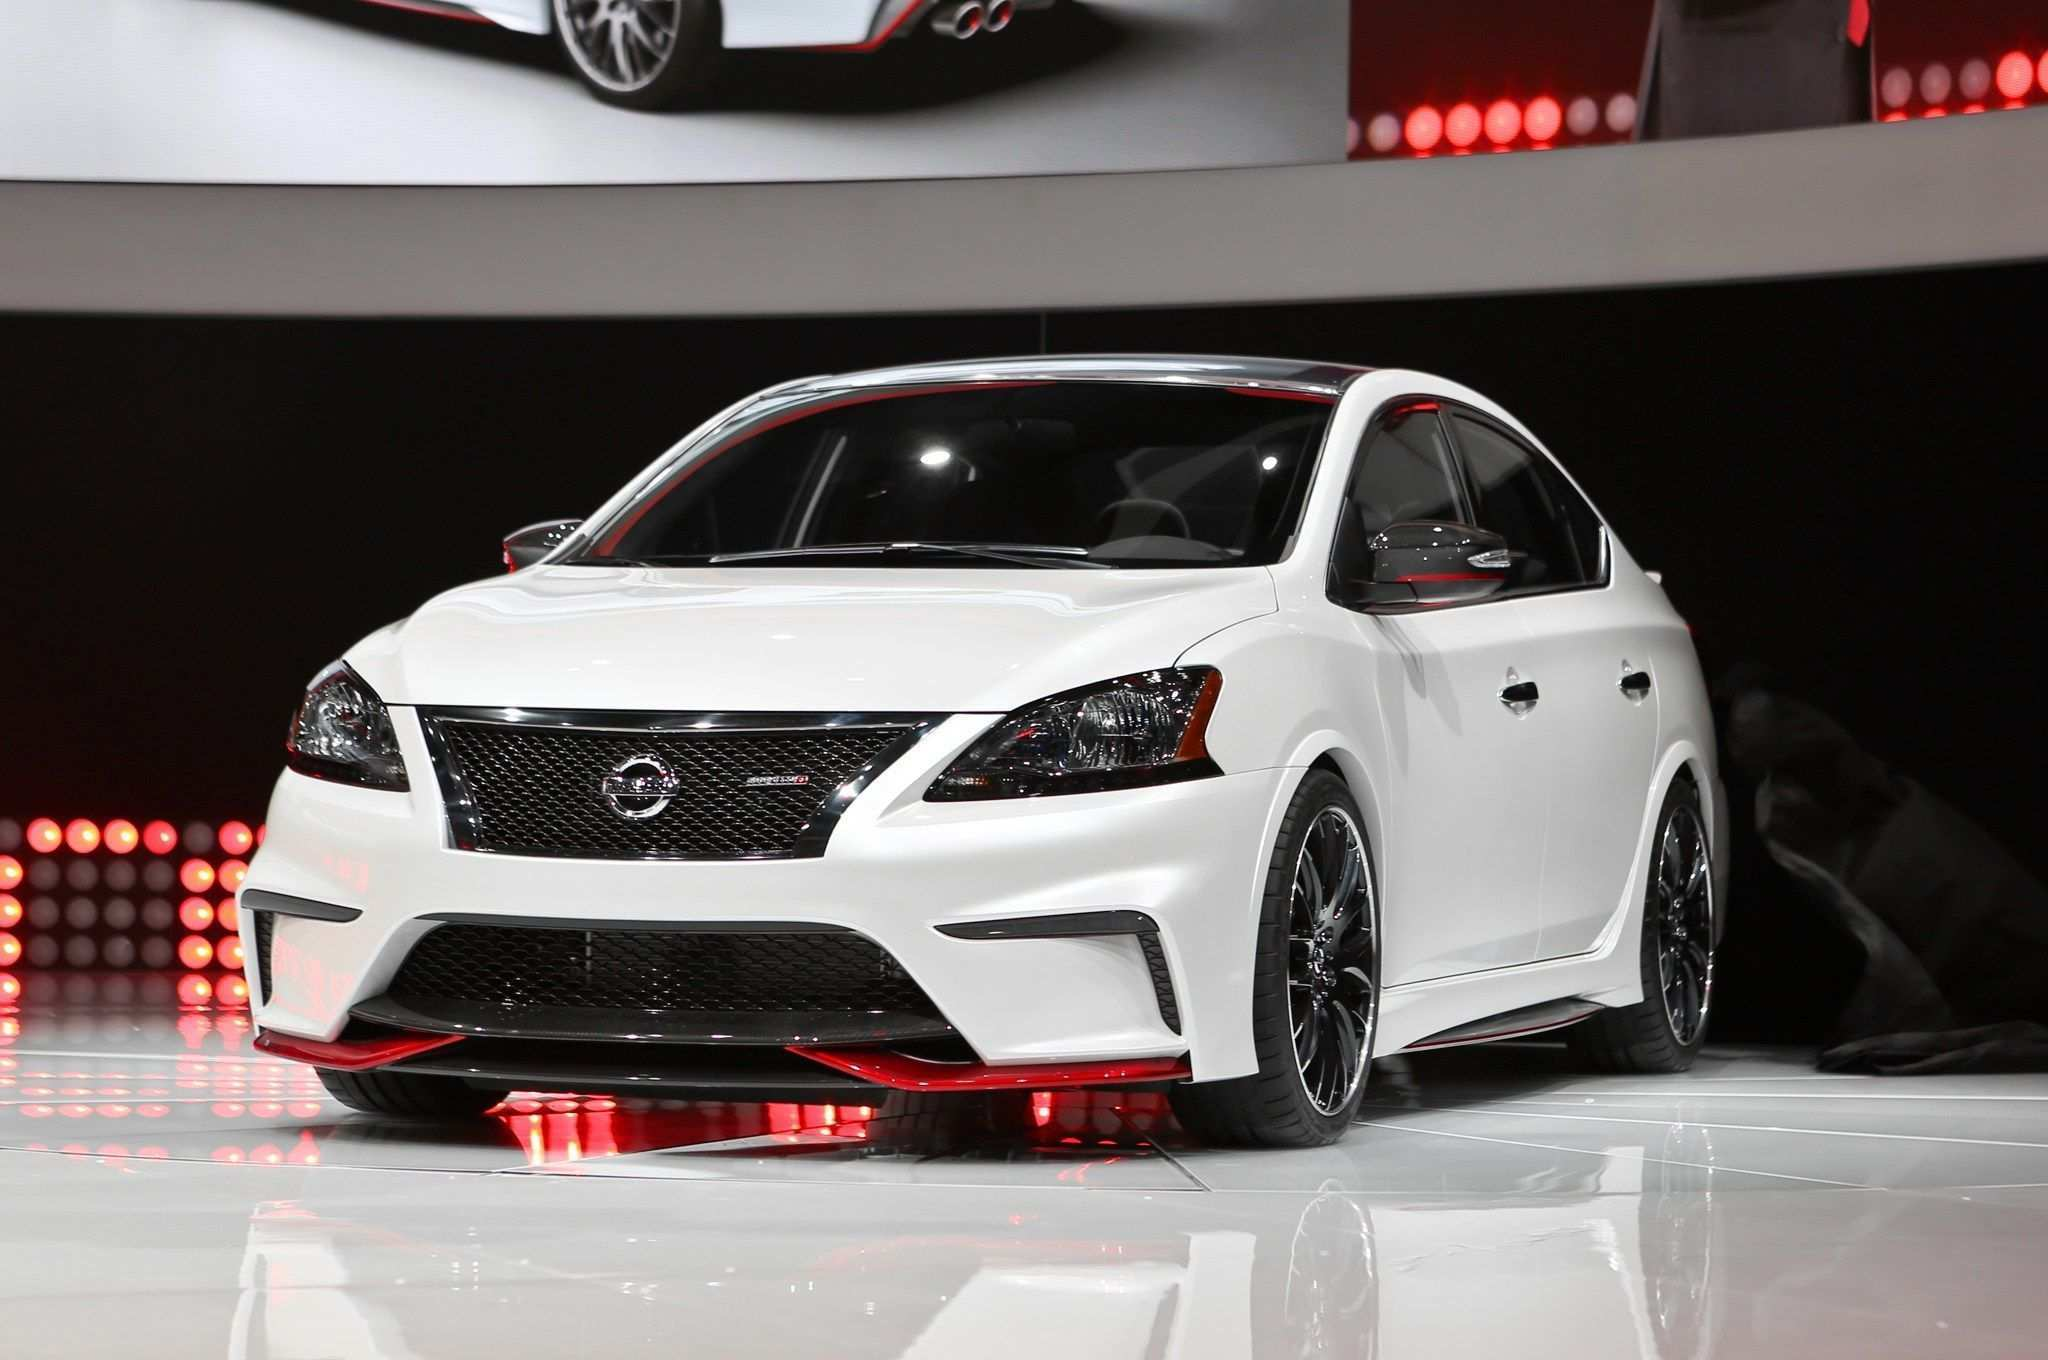 64 Great 2020 Nissan Sentra Ratings for 2020 Nissan Sentra